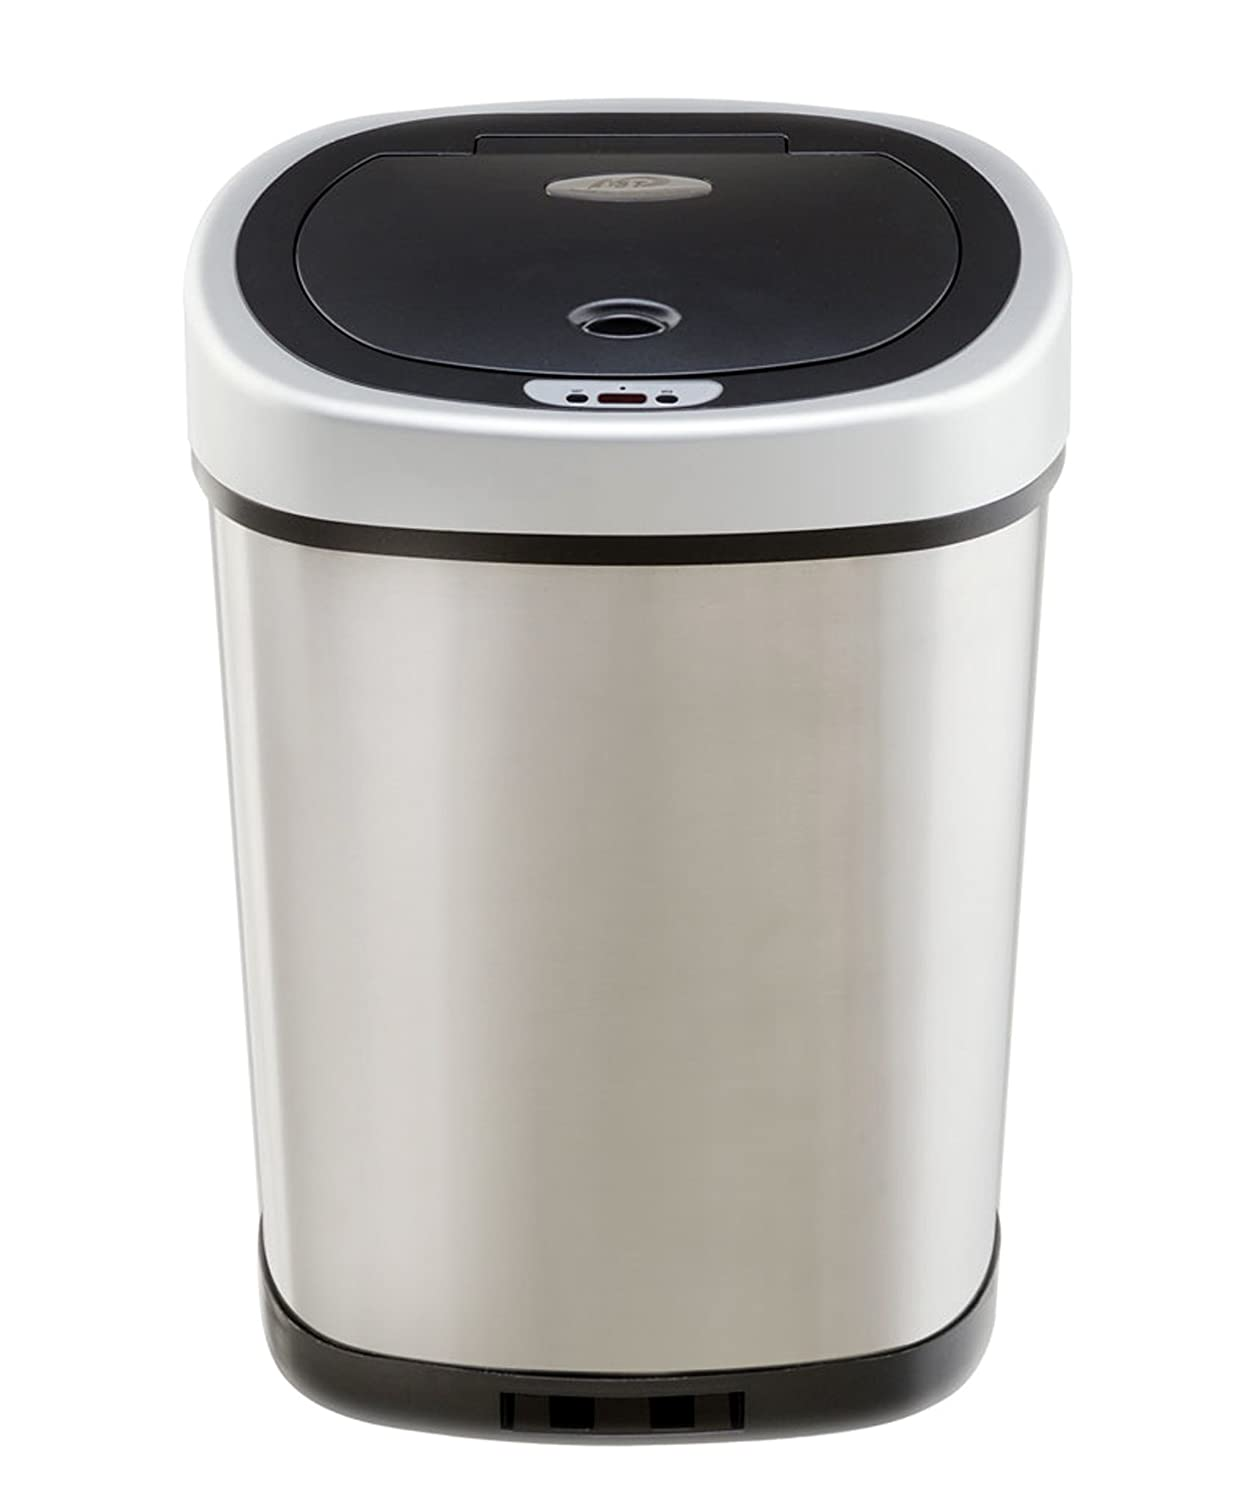 how to detect garbage bin from sensors